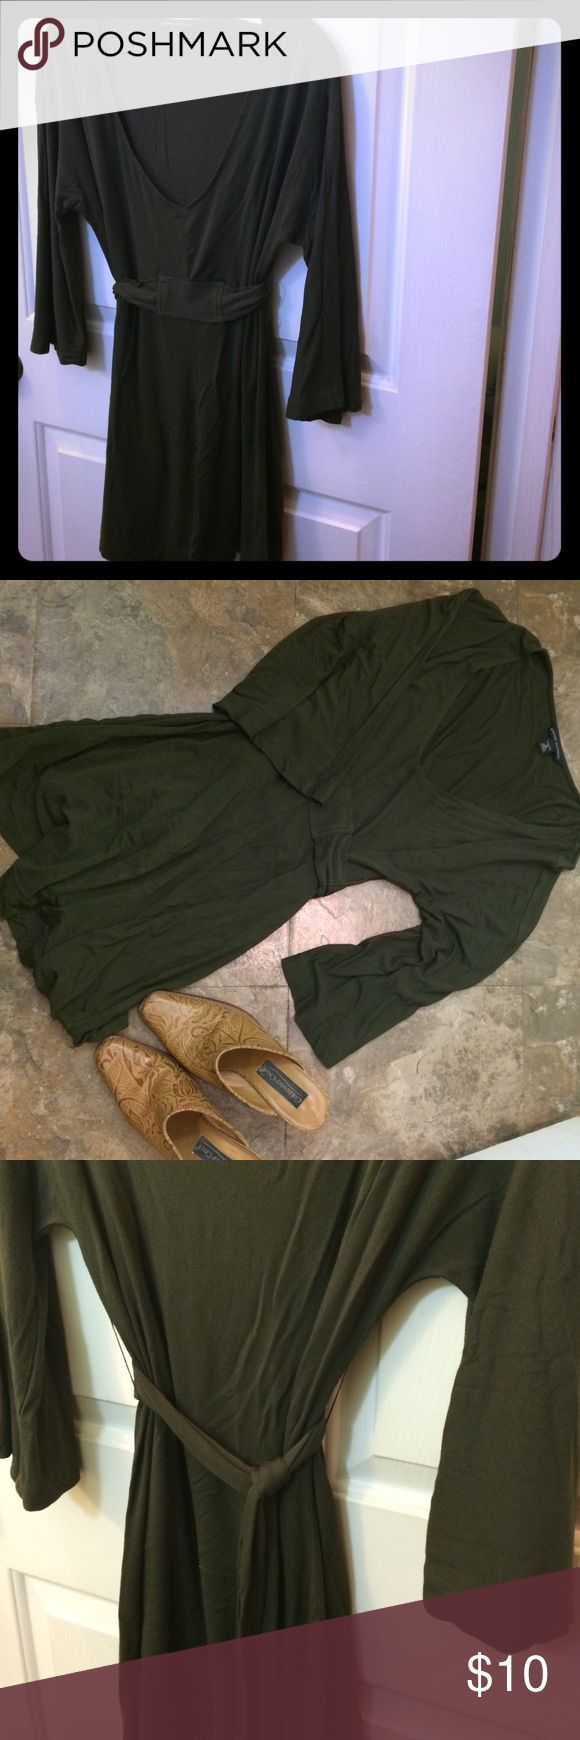 Banana Republic tunic Dark olive color tunic from banana republic is perfect for leggings or jeans! Stretch fabric and belted waist. Banana Republic Tops